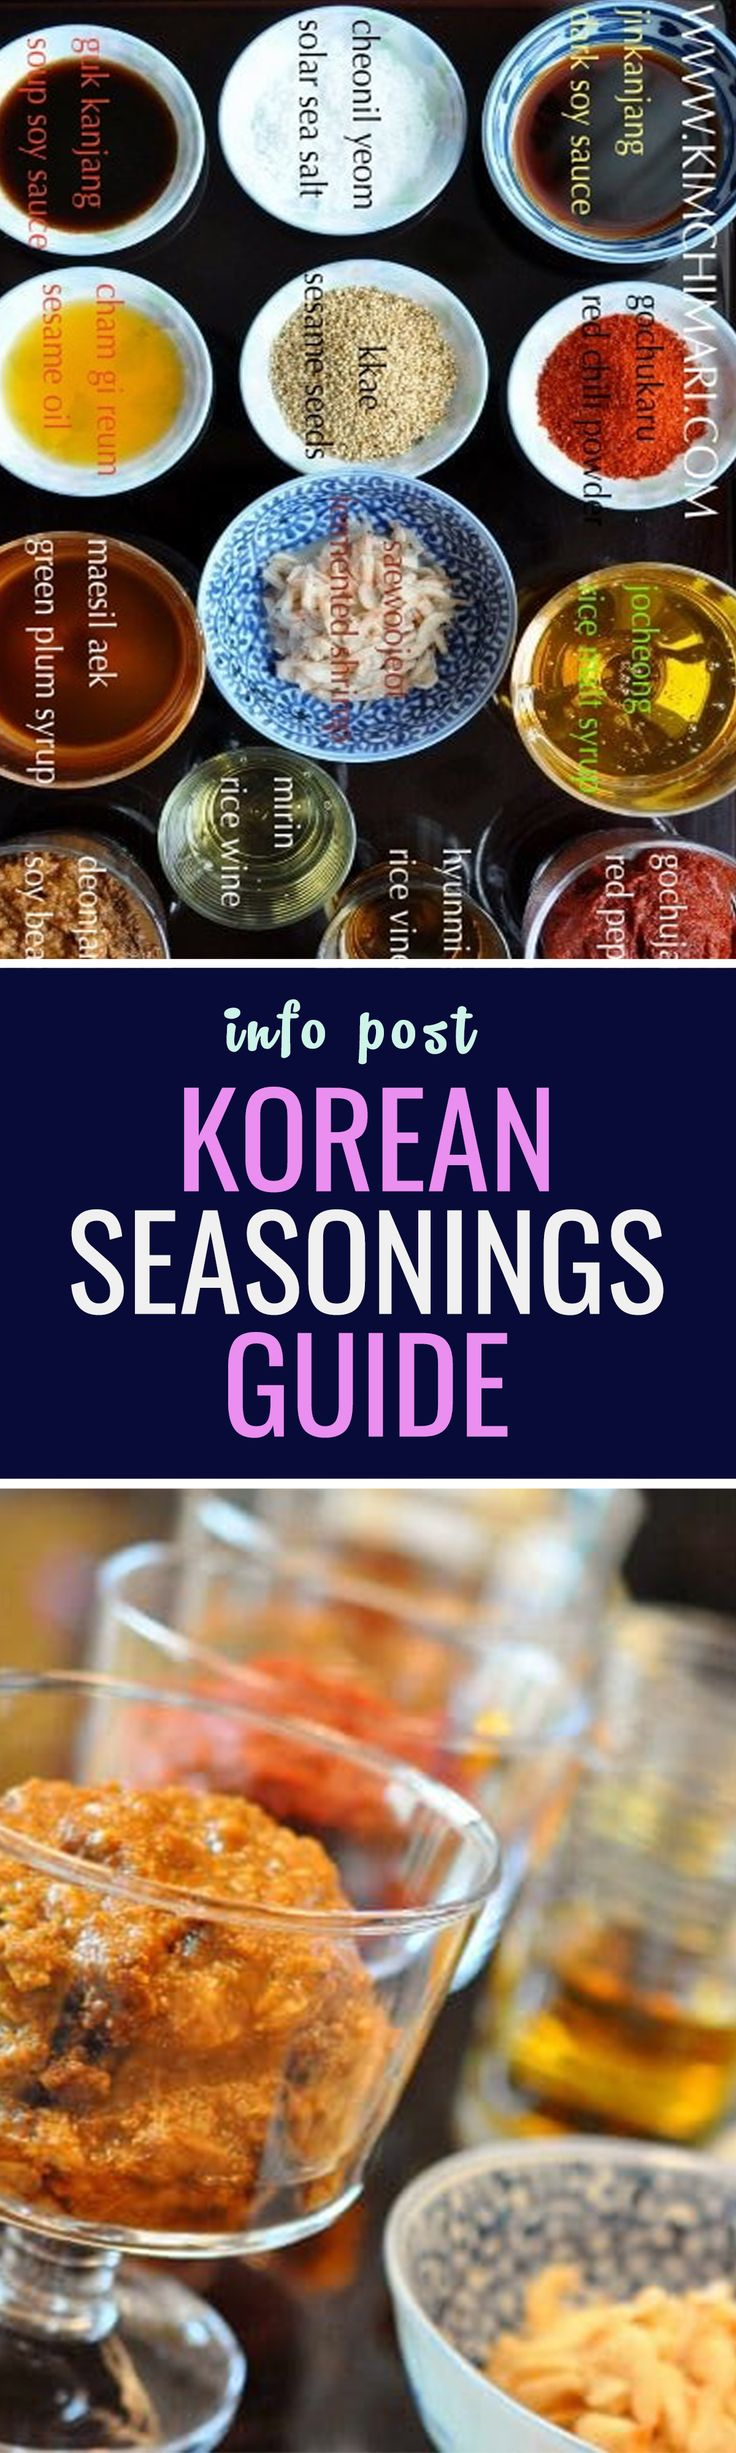 Korean Seasonings Guide - Here is a guide for the basic sauce and condiments needed to make delicious Korean food.